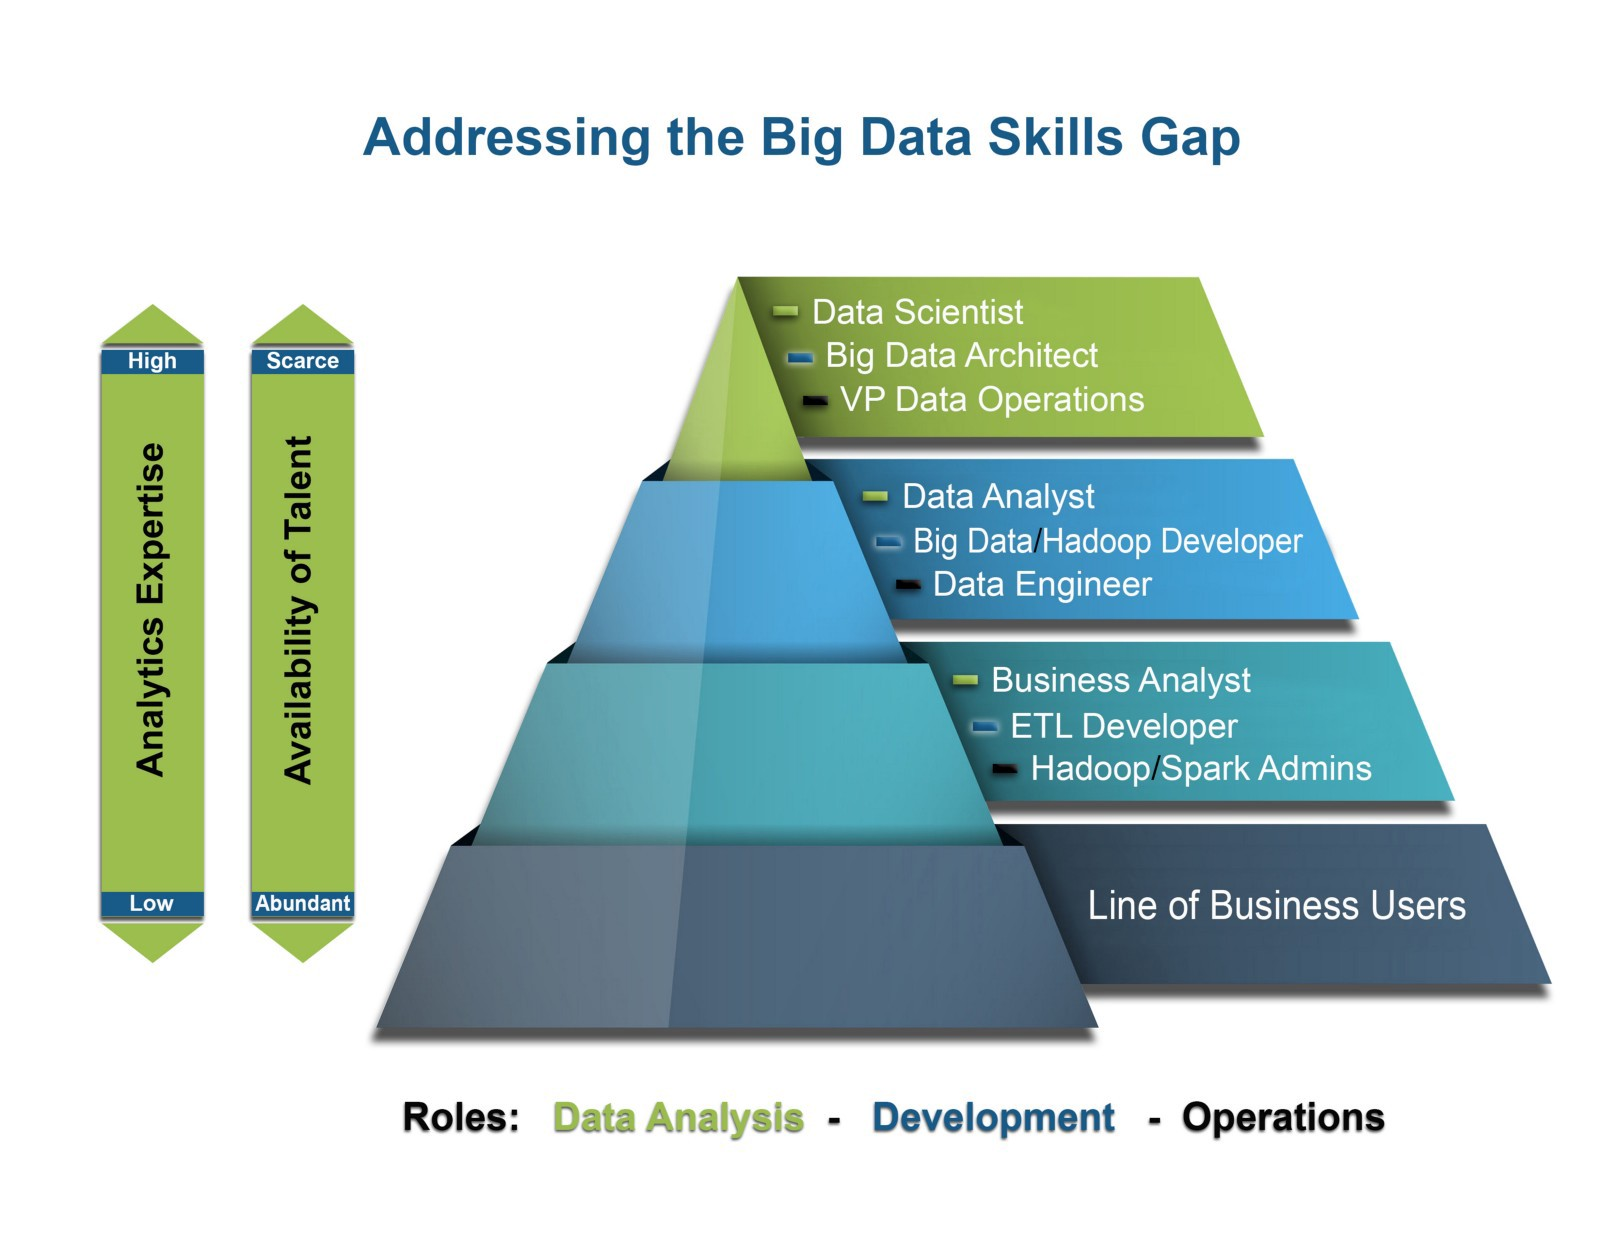 The Dynamics of Data Roles & Teams - Towards Data Science